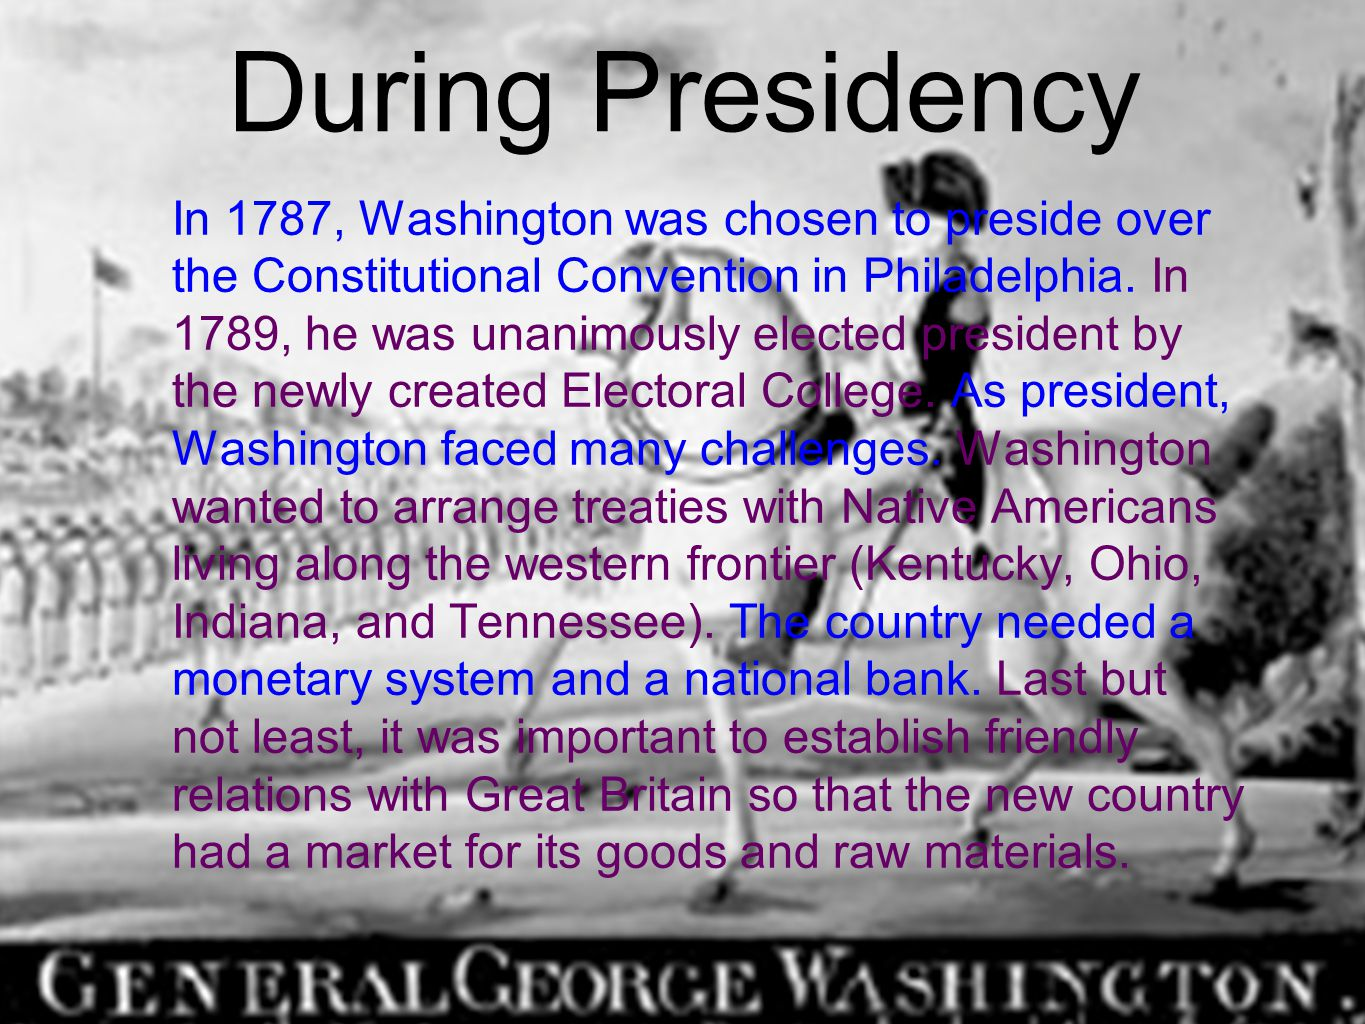 During Presidency In 1787, Washington was chosen to preside over the Constitutional Convention in Philadelphia.